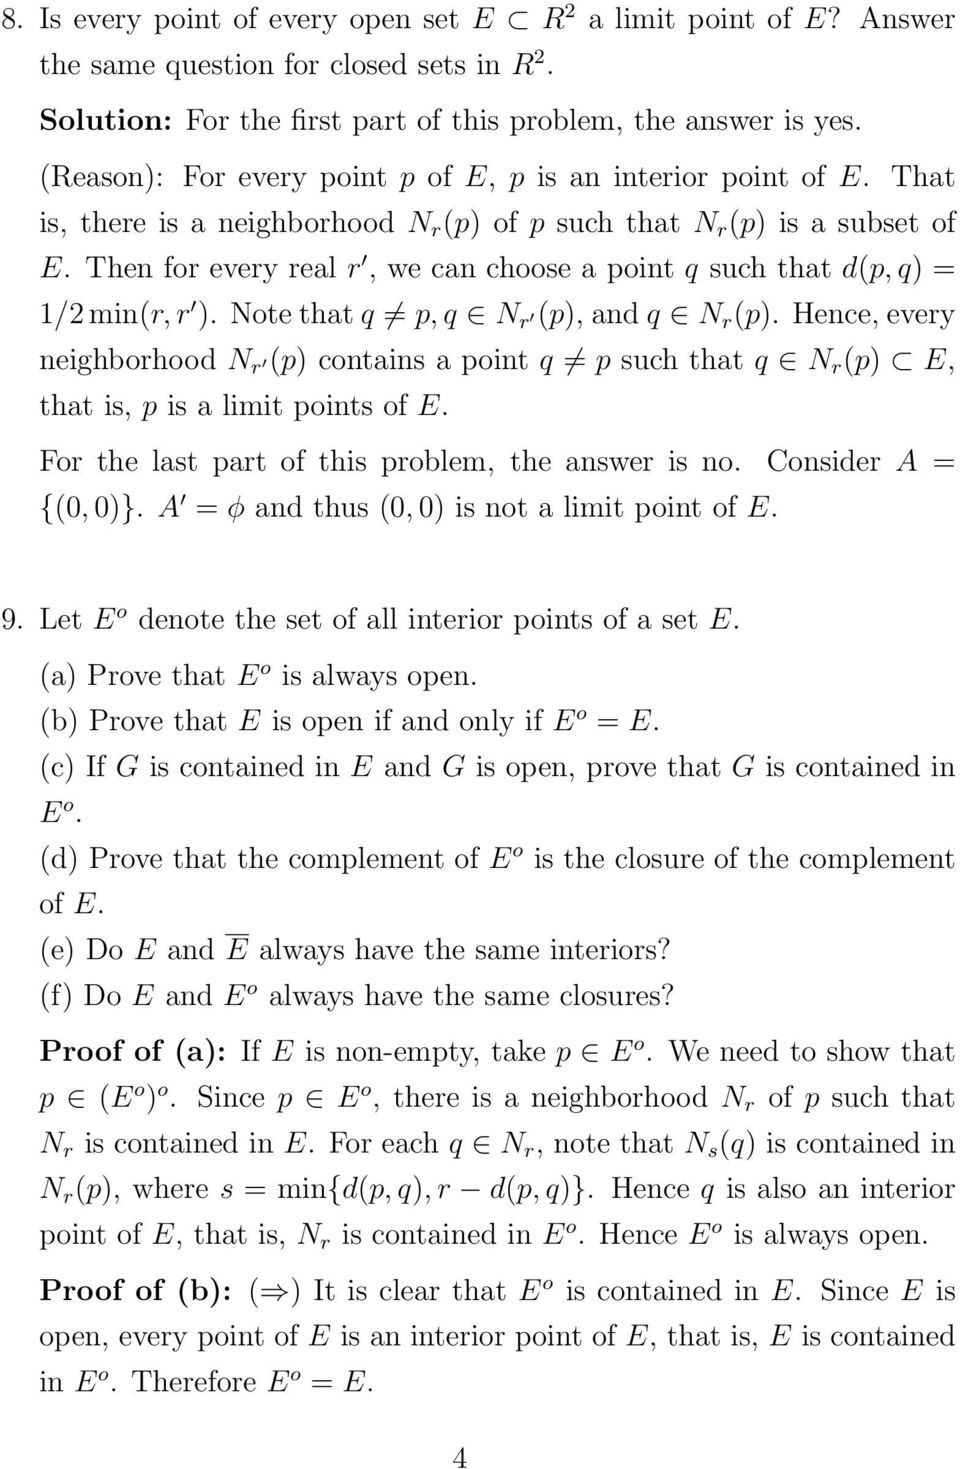 Then for every real r, we can choose a point q such that d(p, q) = 1/2 min(r, r ). Note that q p, q N r (p), and q N r (p).